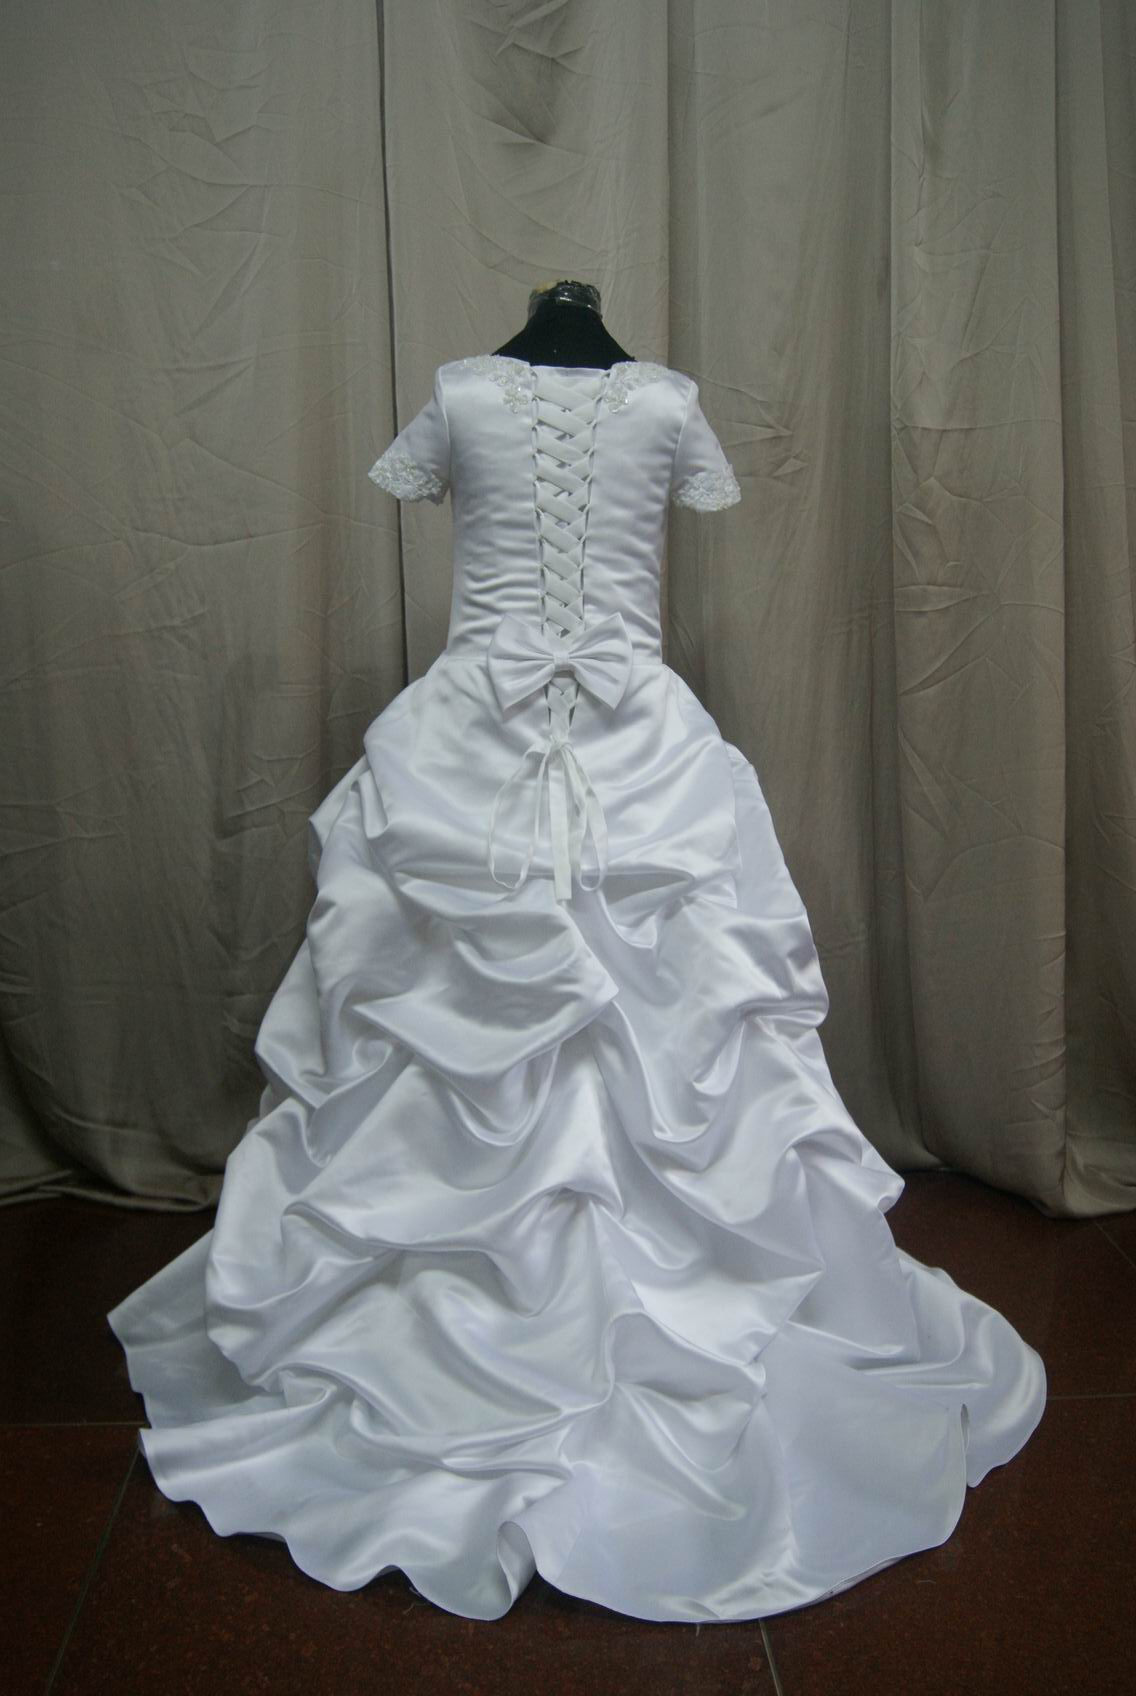 Pickup short sleeve miniature wedding gown.